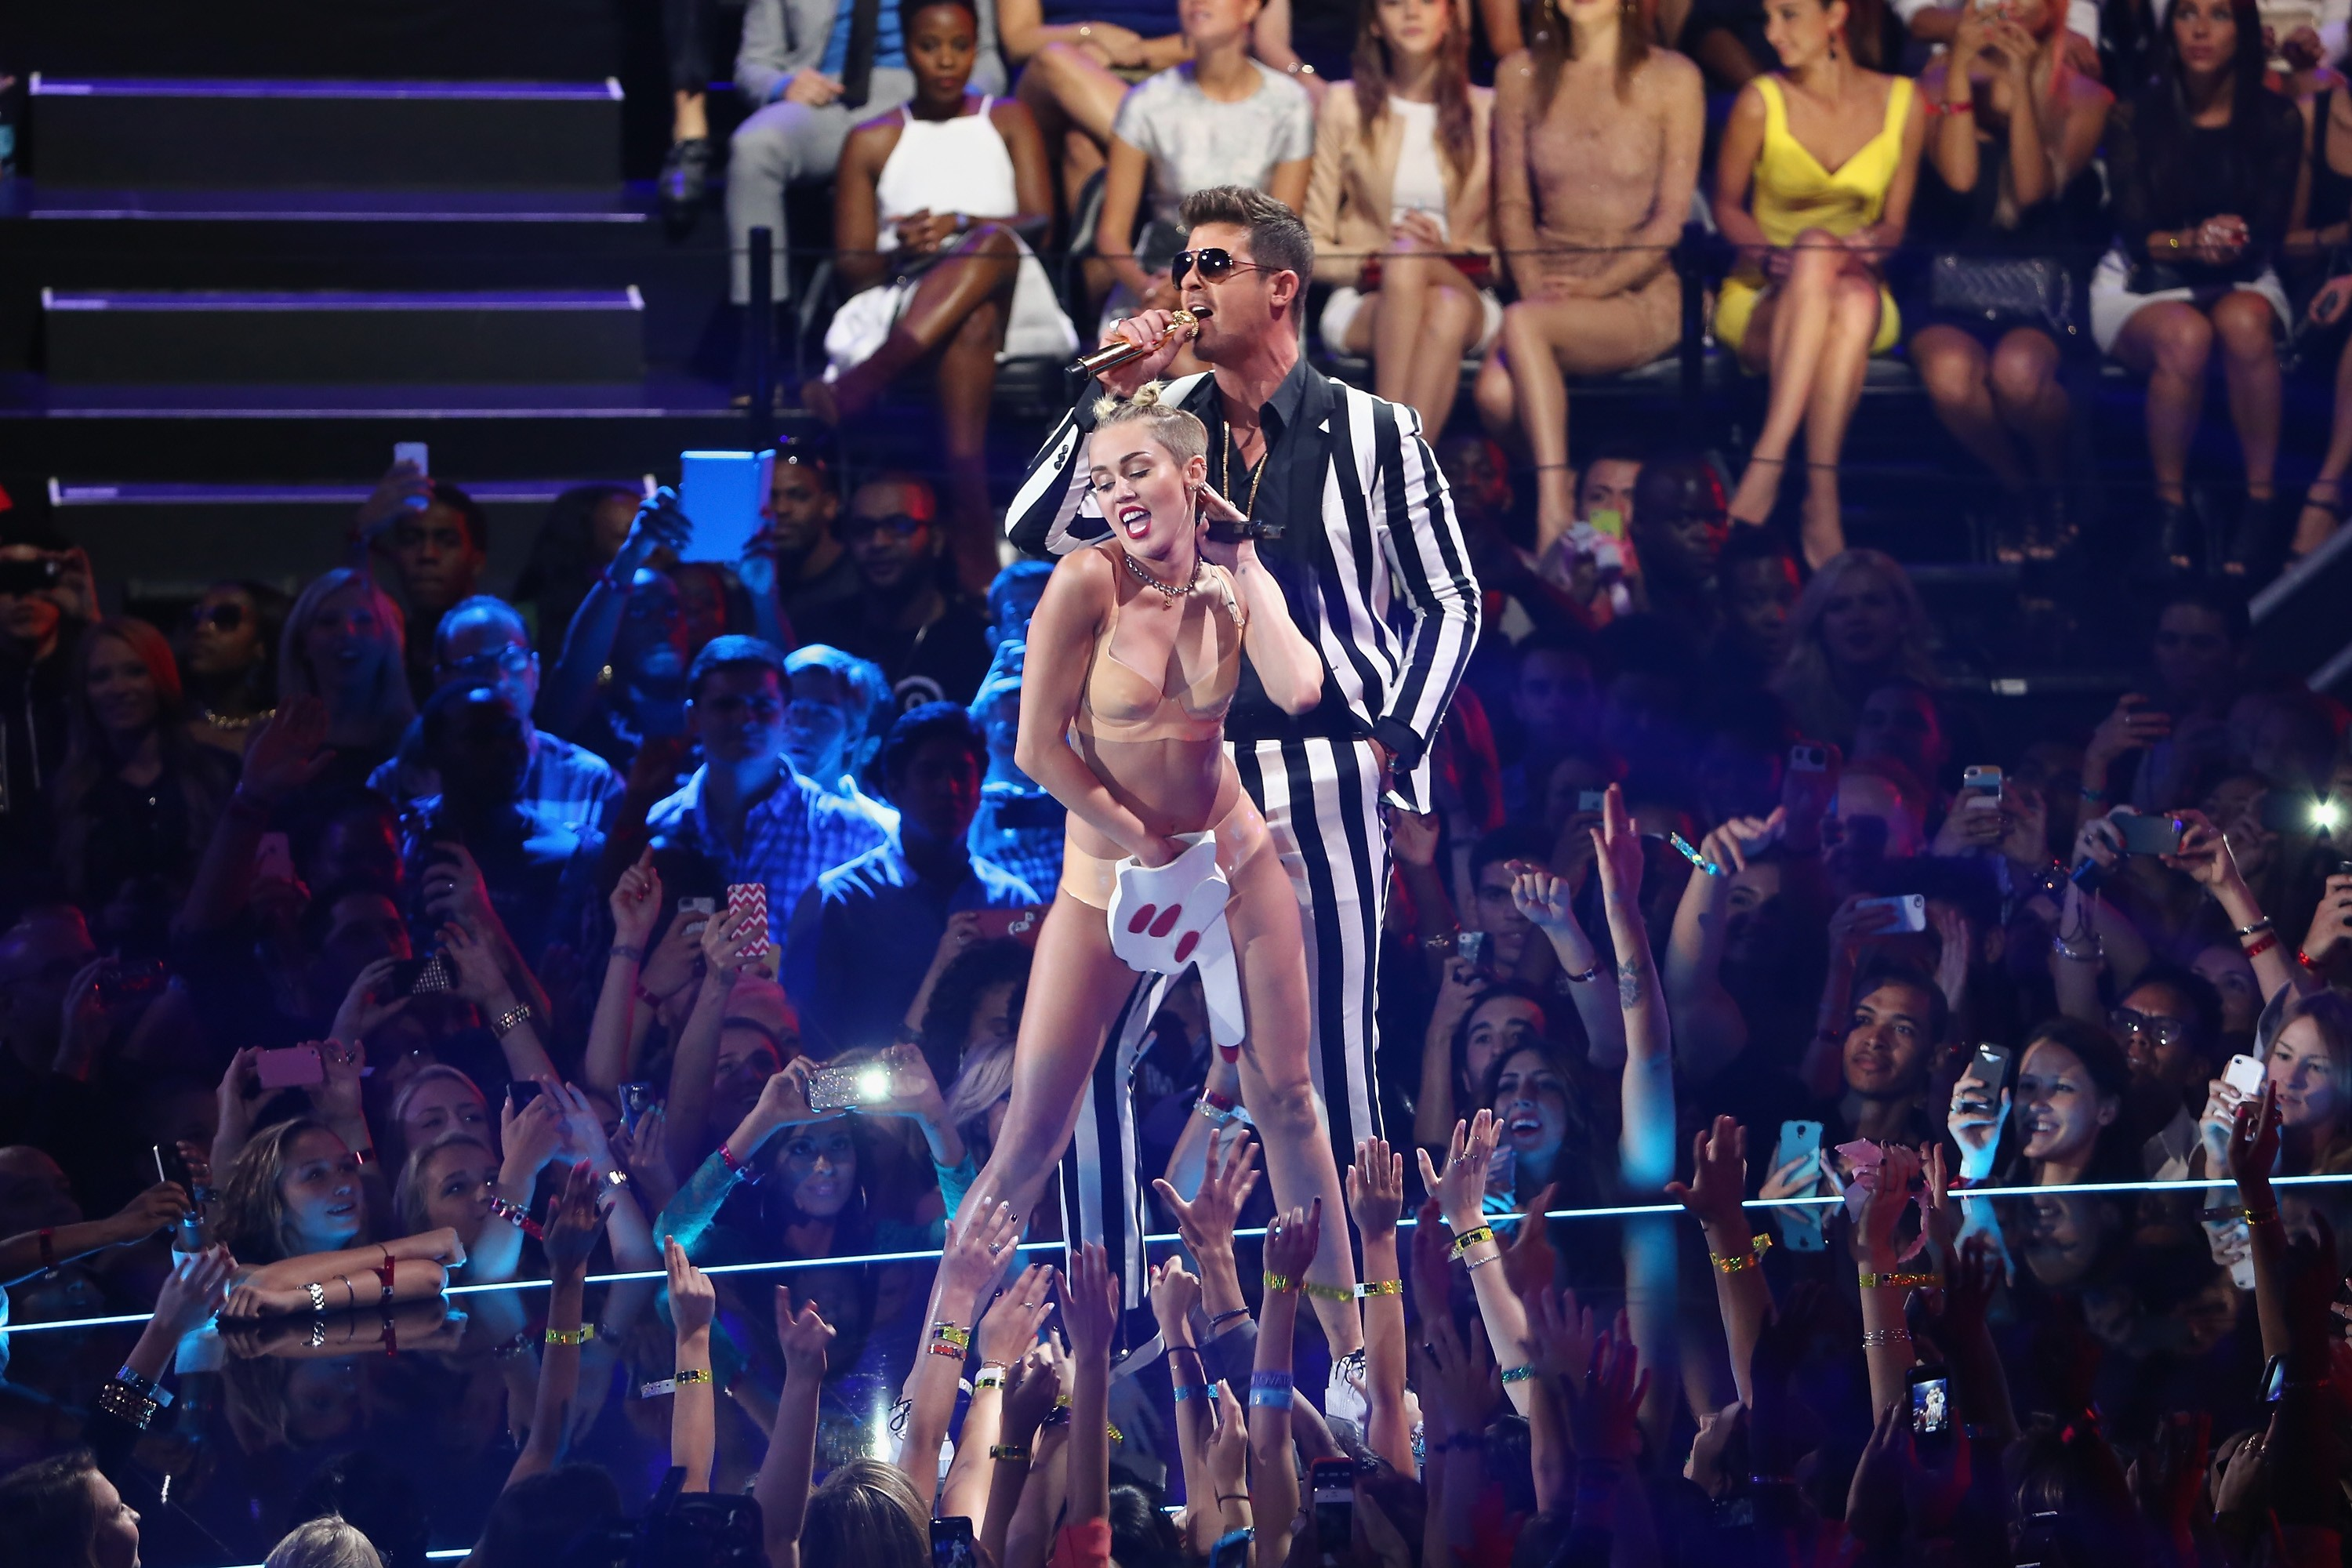 Miley Cyrus no VMA 2013 com Robin Thicke (Foto: Getty Images)